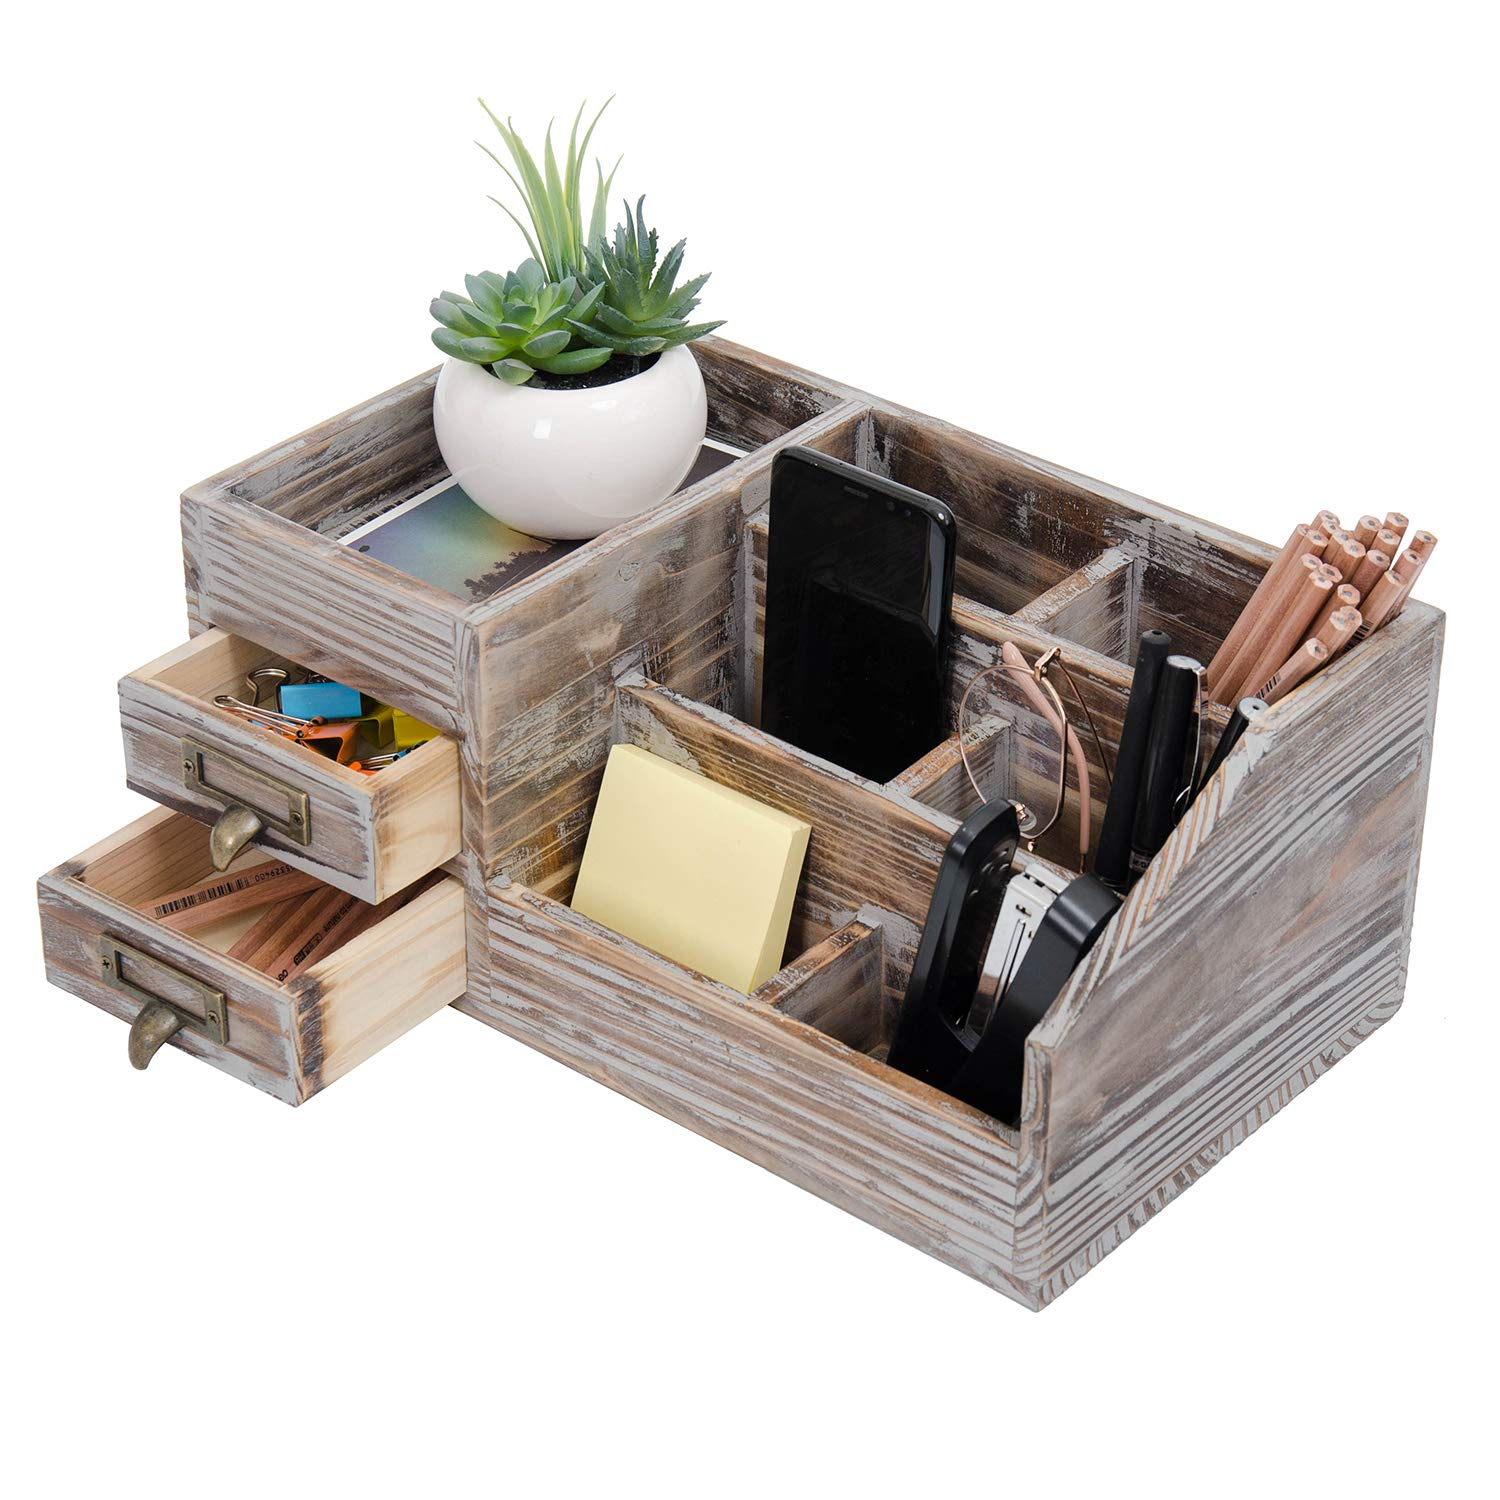 Liry Products Rustic Torched Wooden Desktop Organizer Dark Brown Tabletop Storage Cabinet Stepped Rack Multiple Compartments 2 Tier Drawers Makeup Accessory Sorter Display Box Home Office Supplies